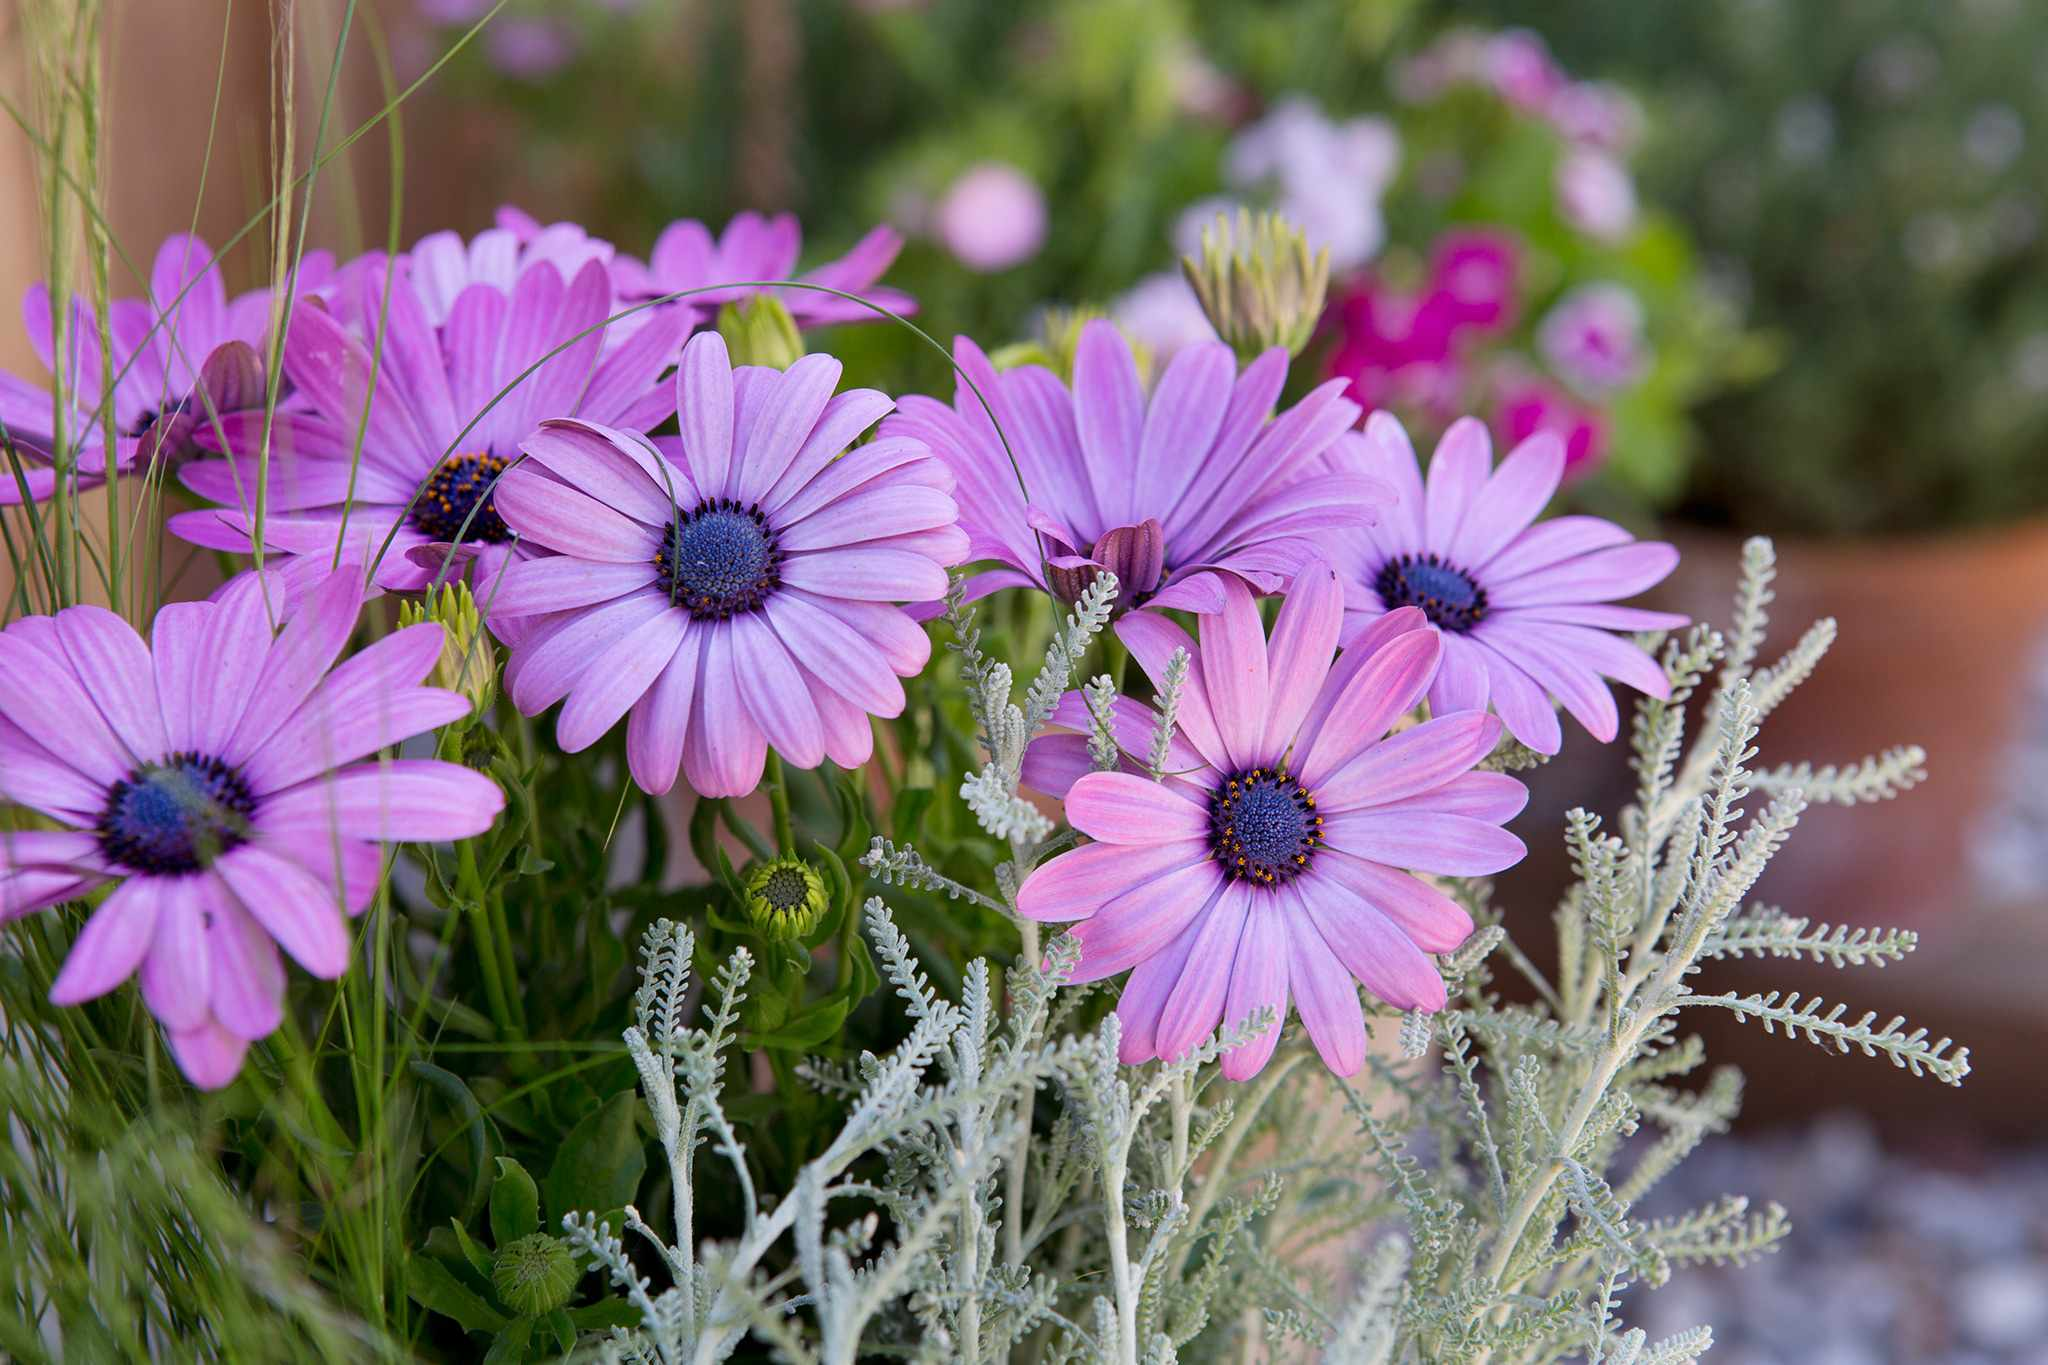 Santolina and pink osteospermum flowers